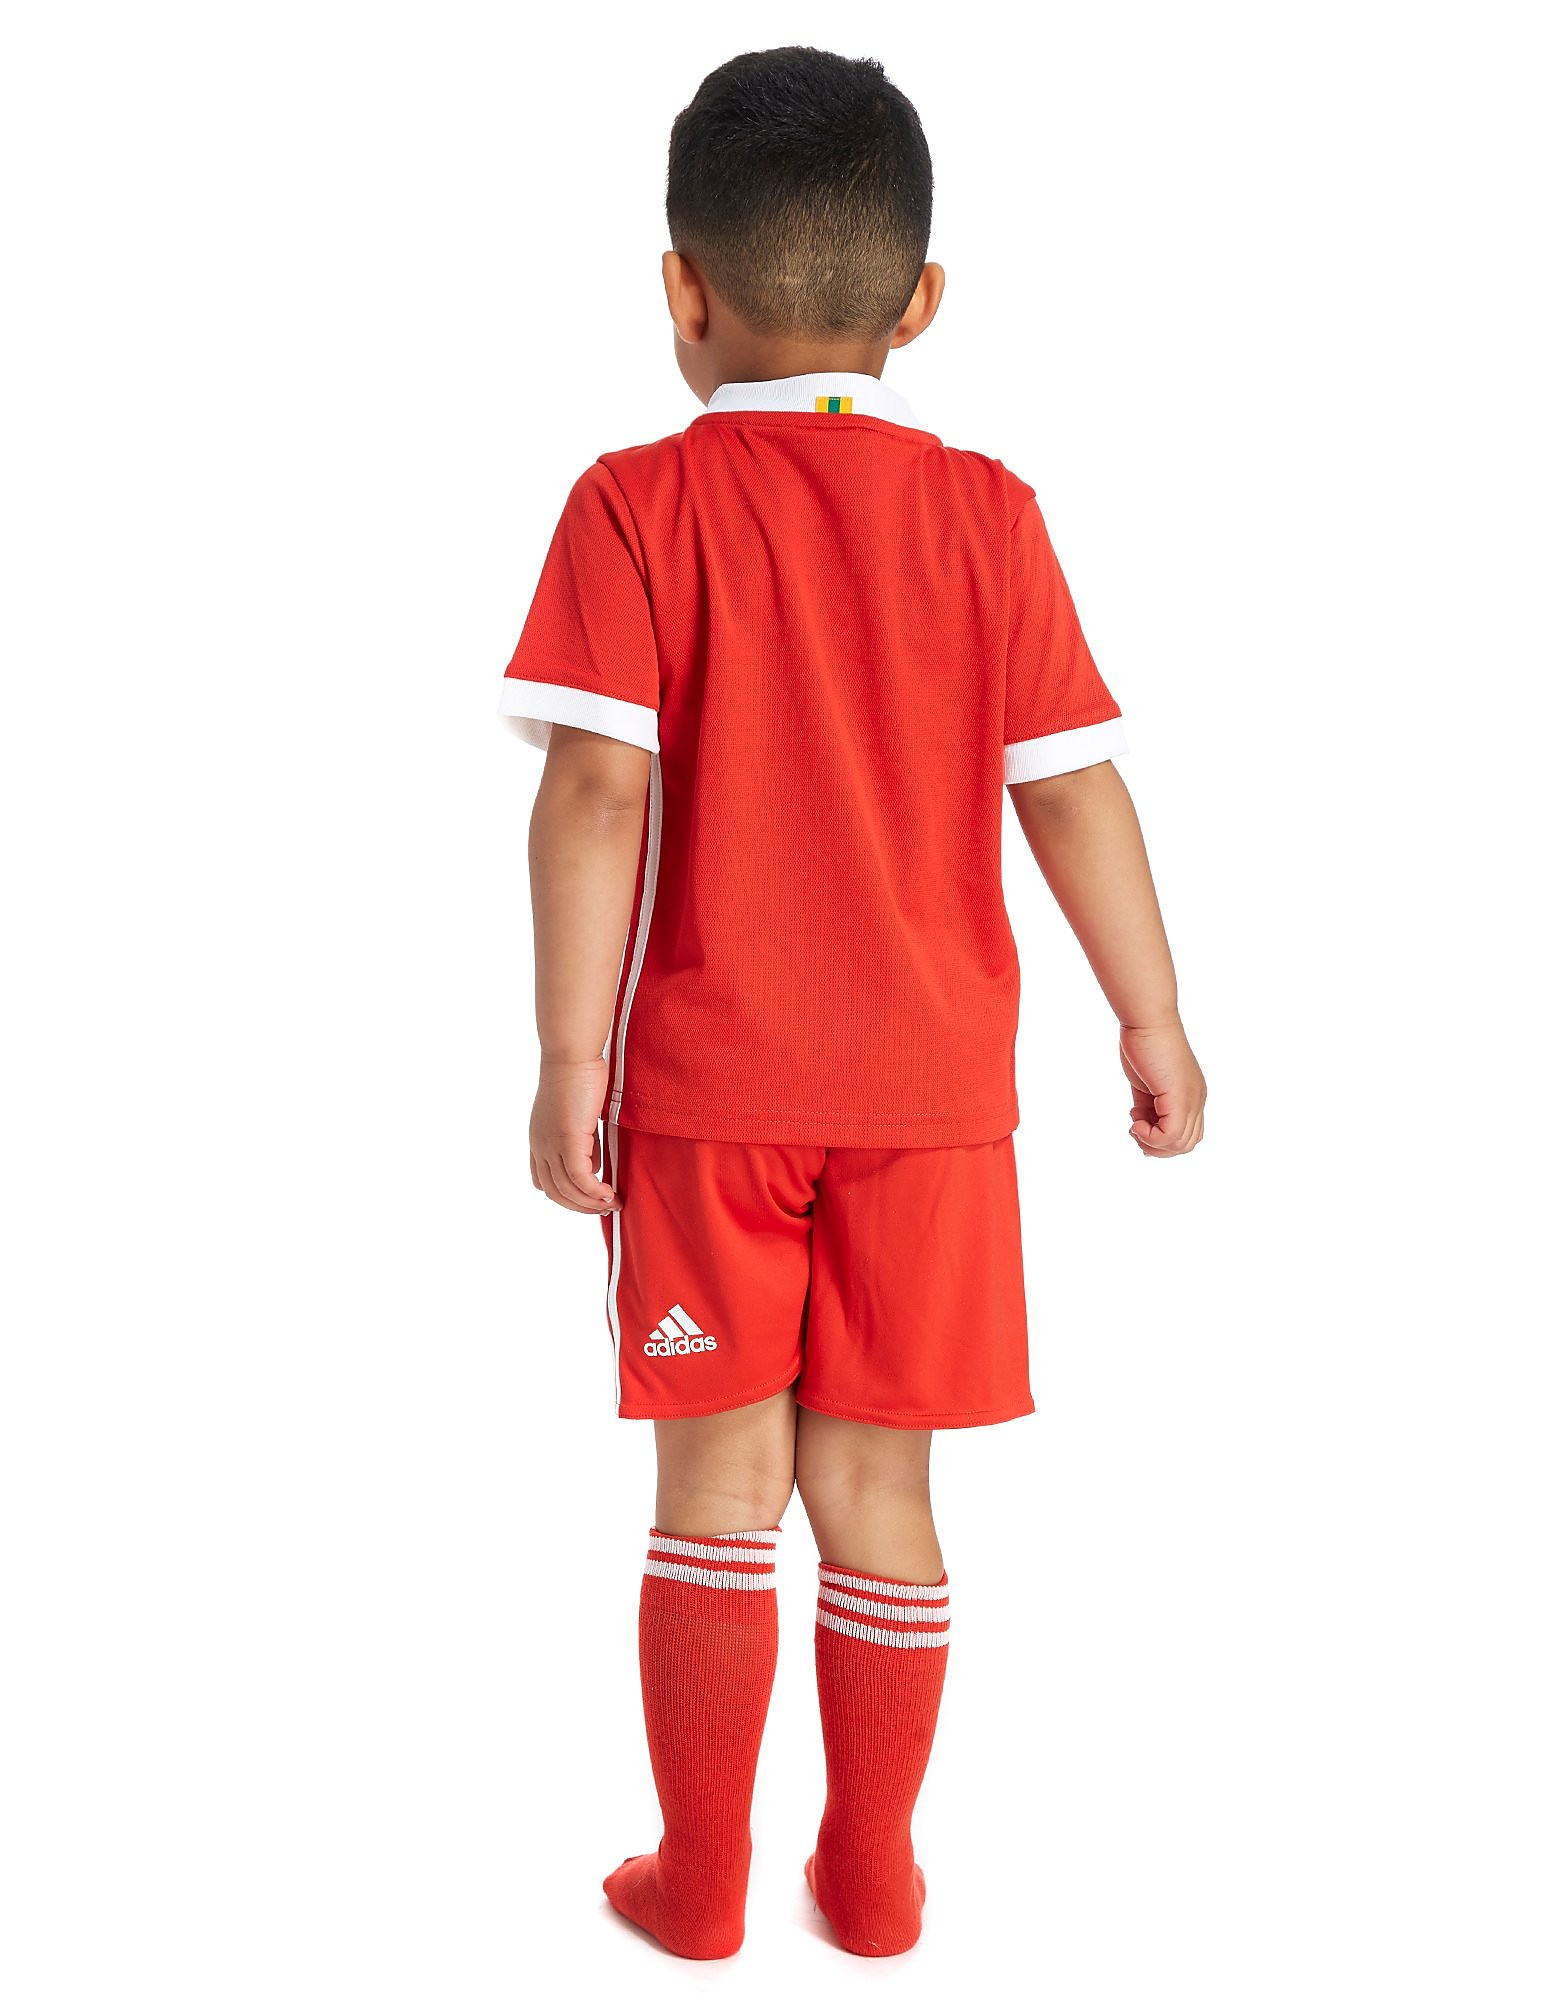 adidas Wales 2017/18 Home Kit Children PRE ORDER